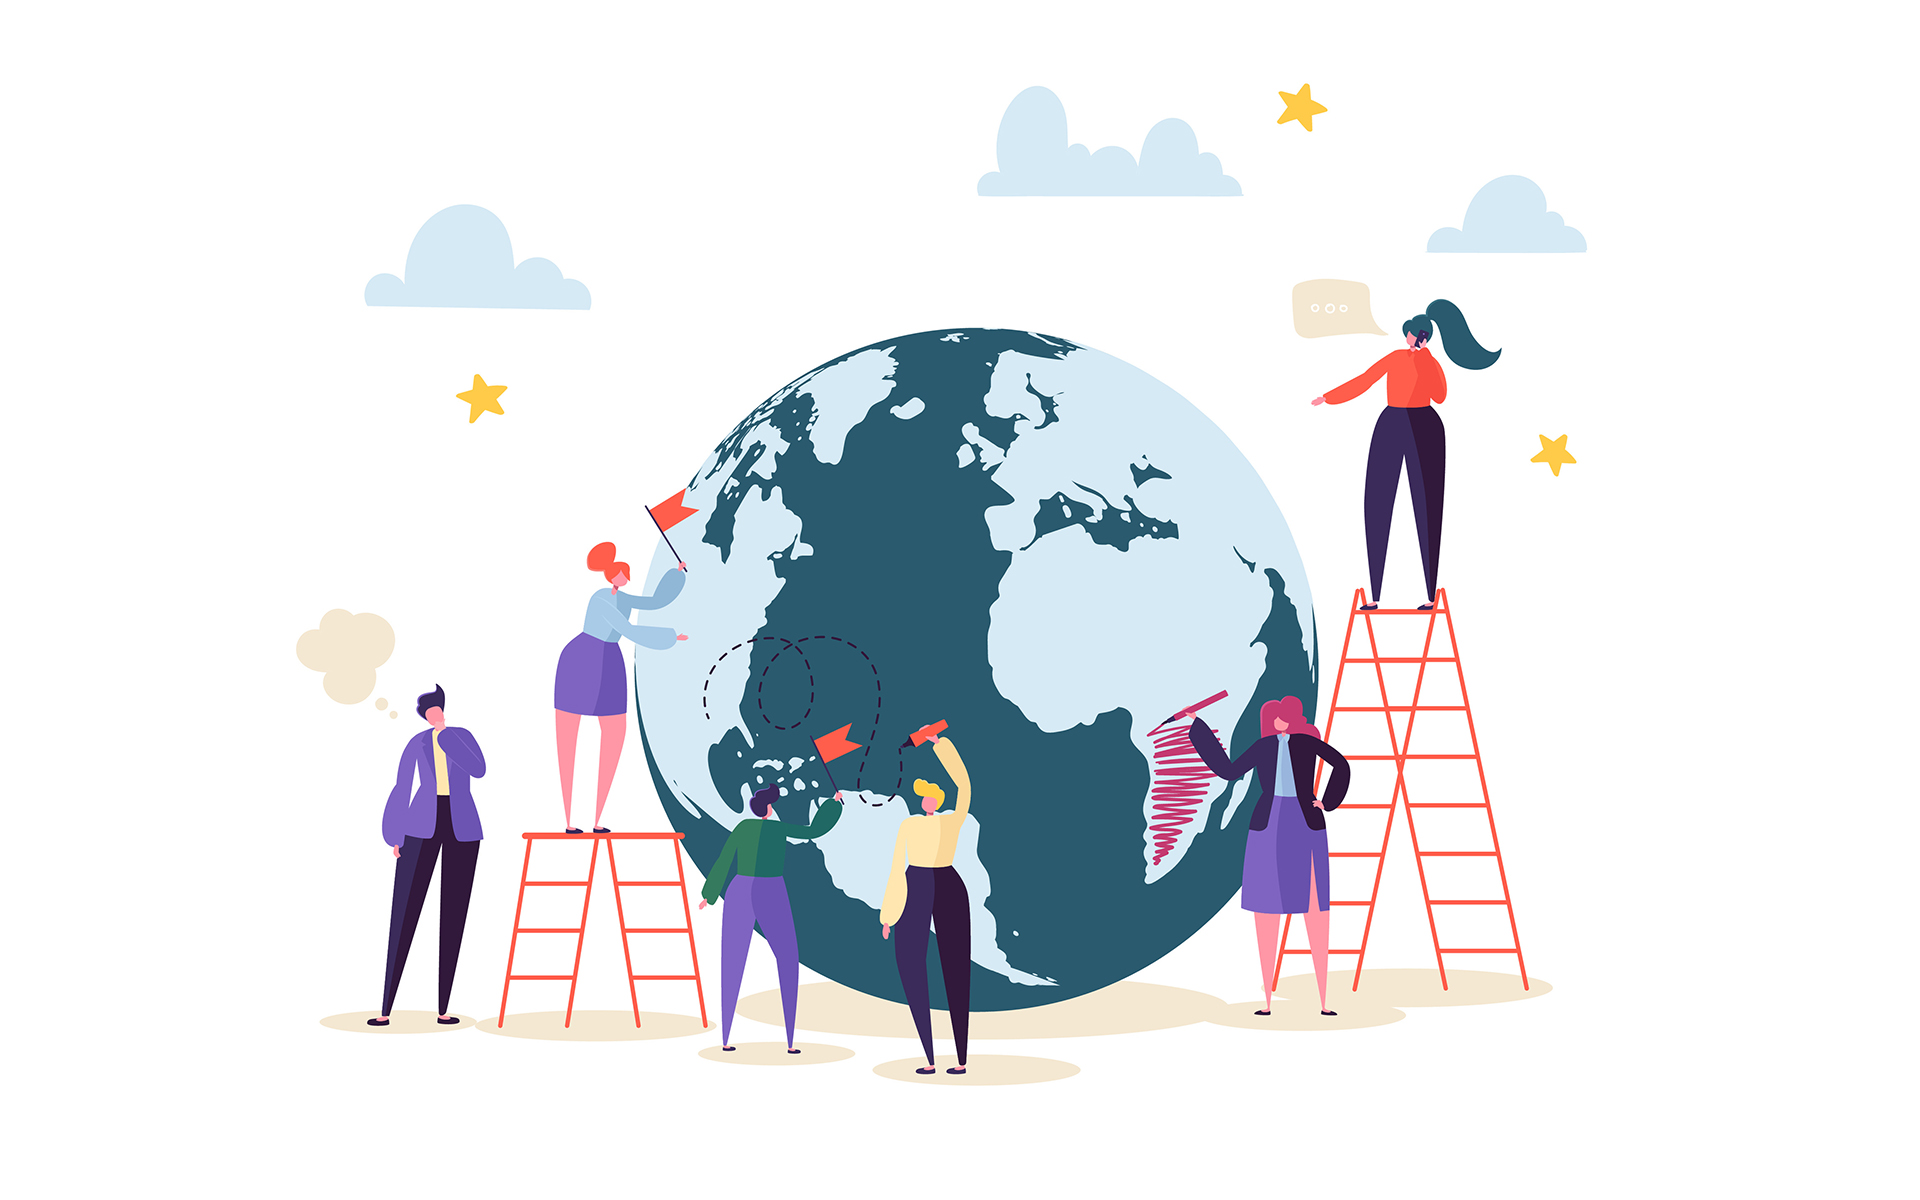 Why now is the time to be mindful - Global Business Concept with Characters Working Together. People